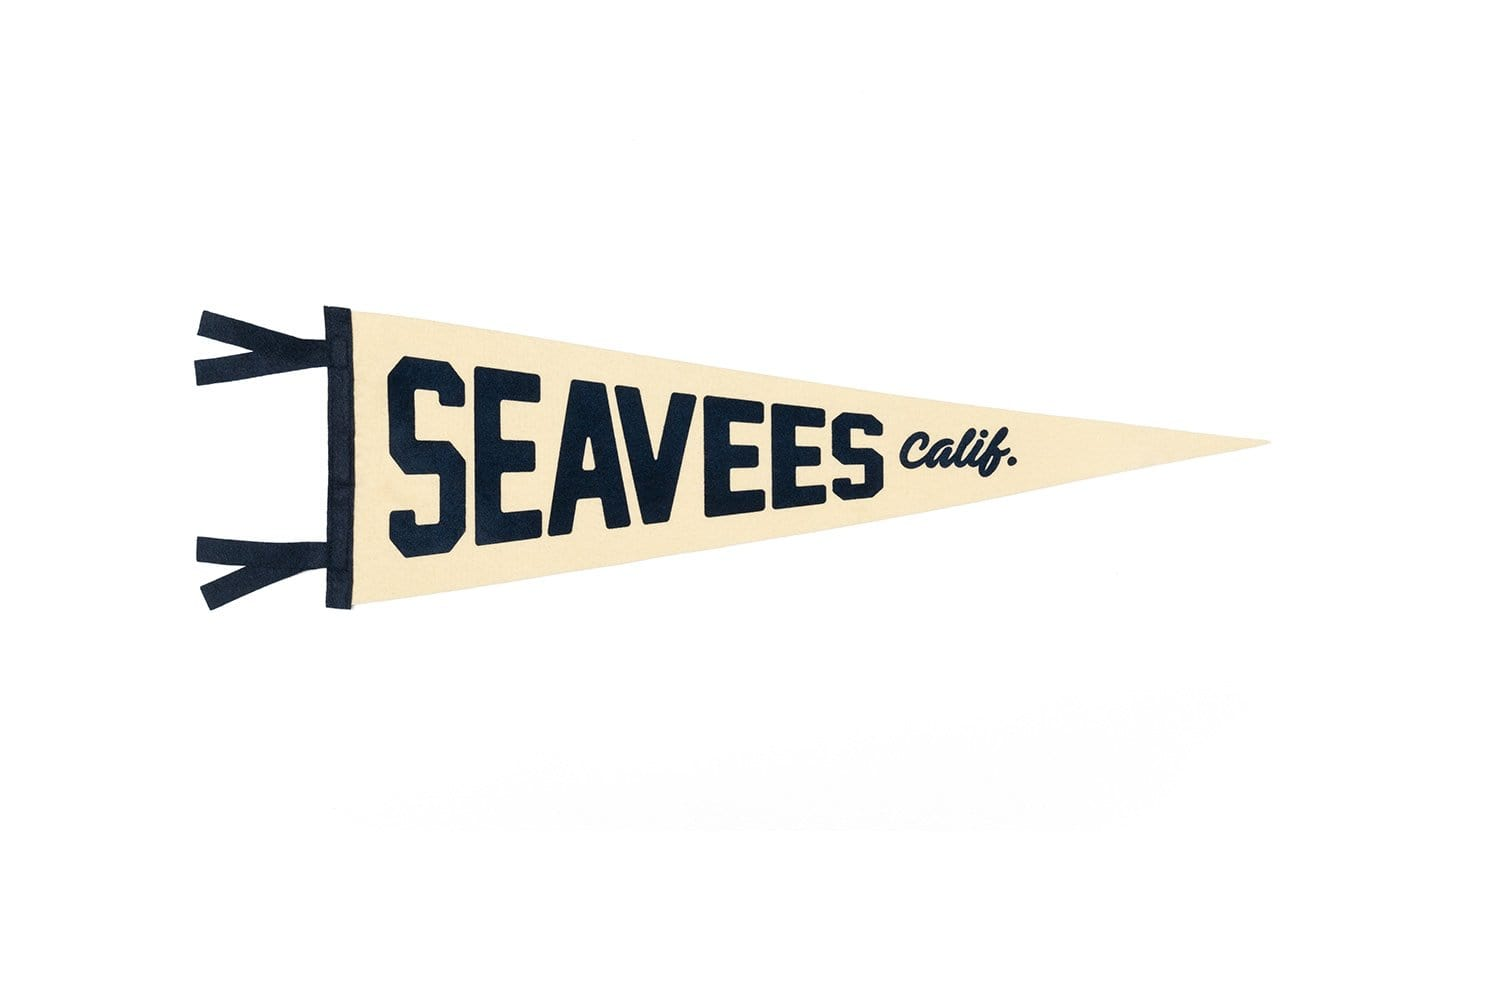 Oxford Pennant - SeaVees Calif.